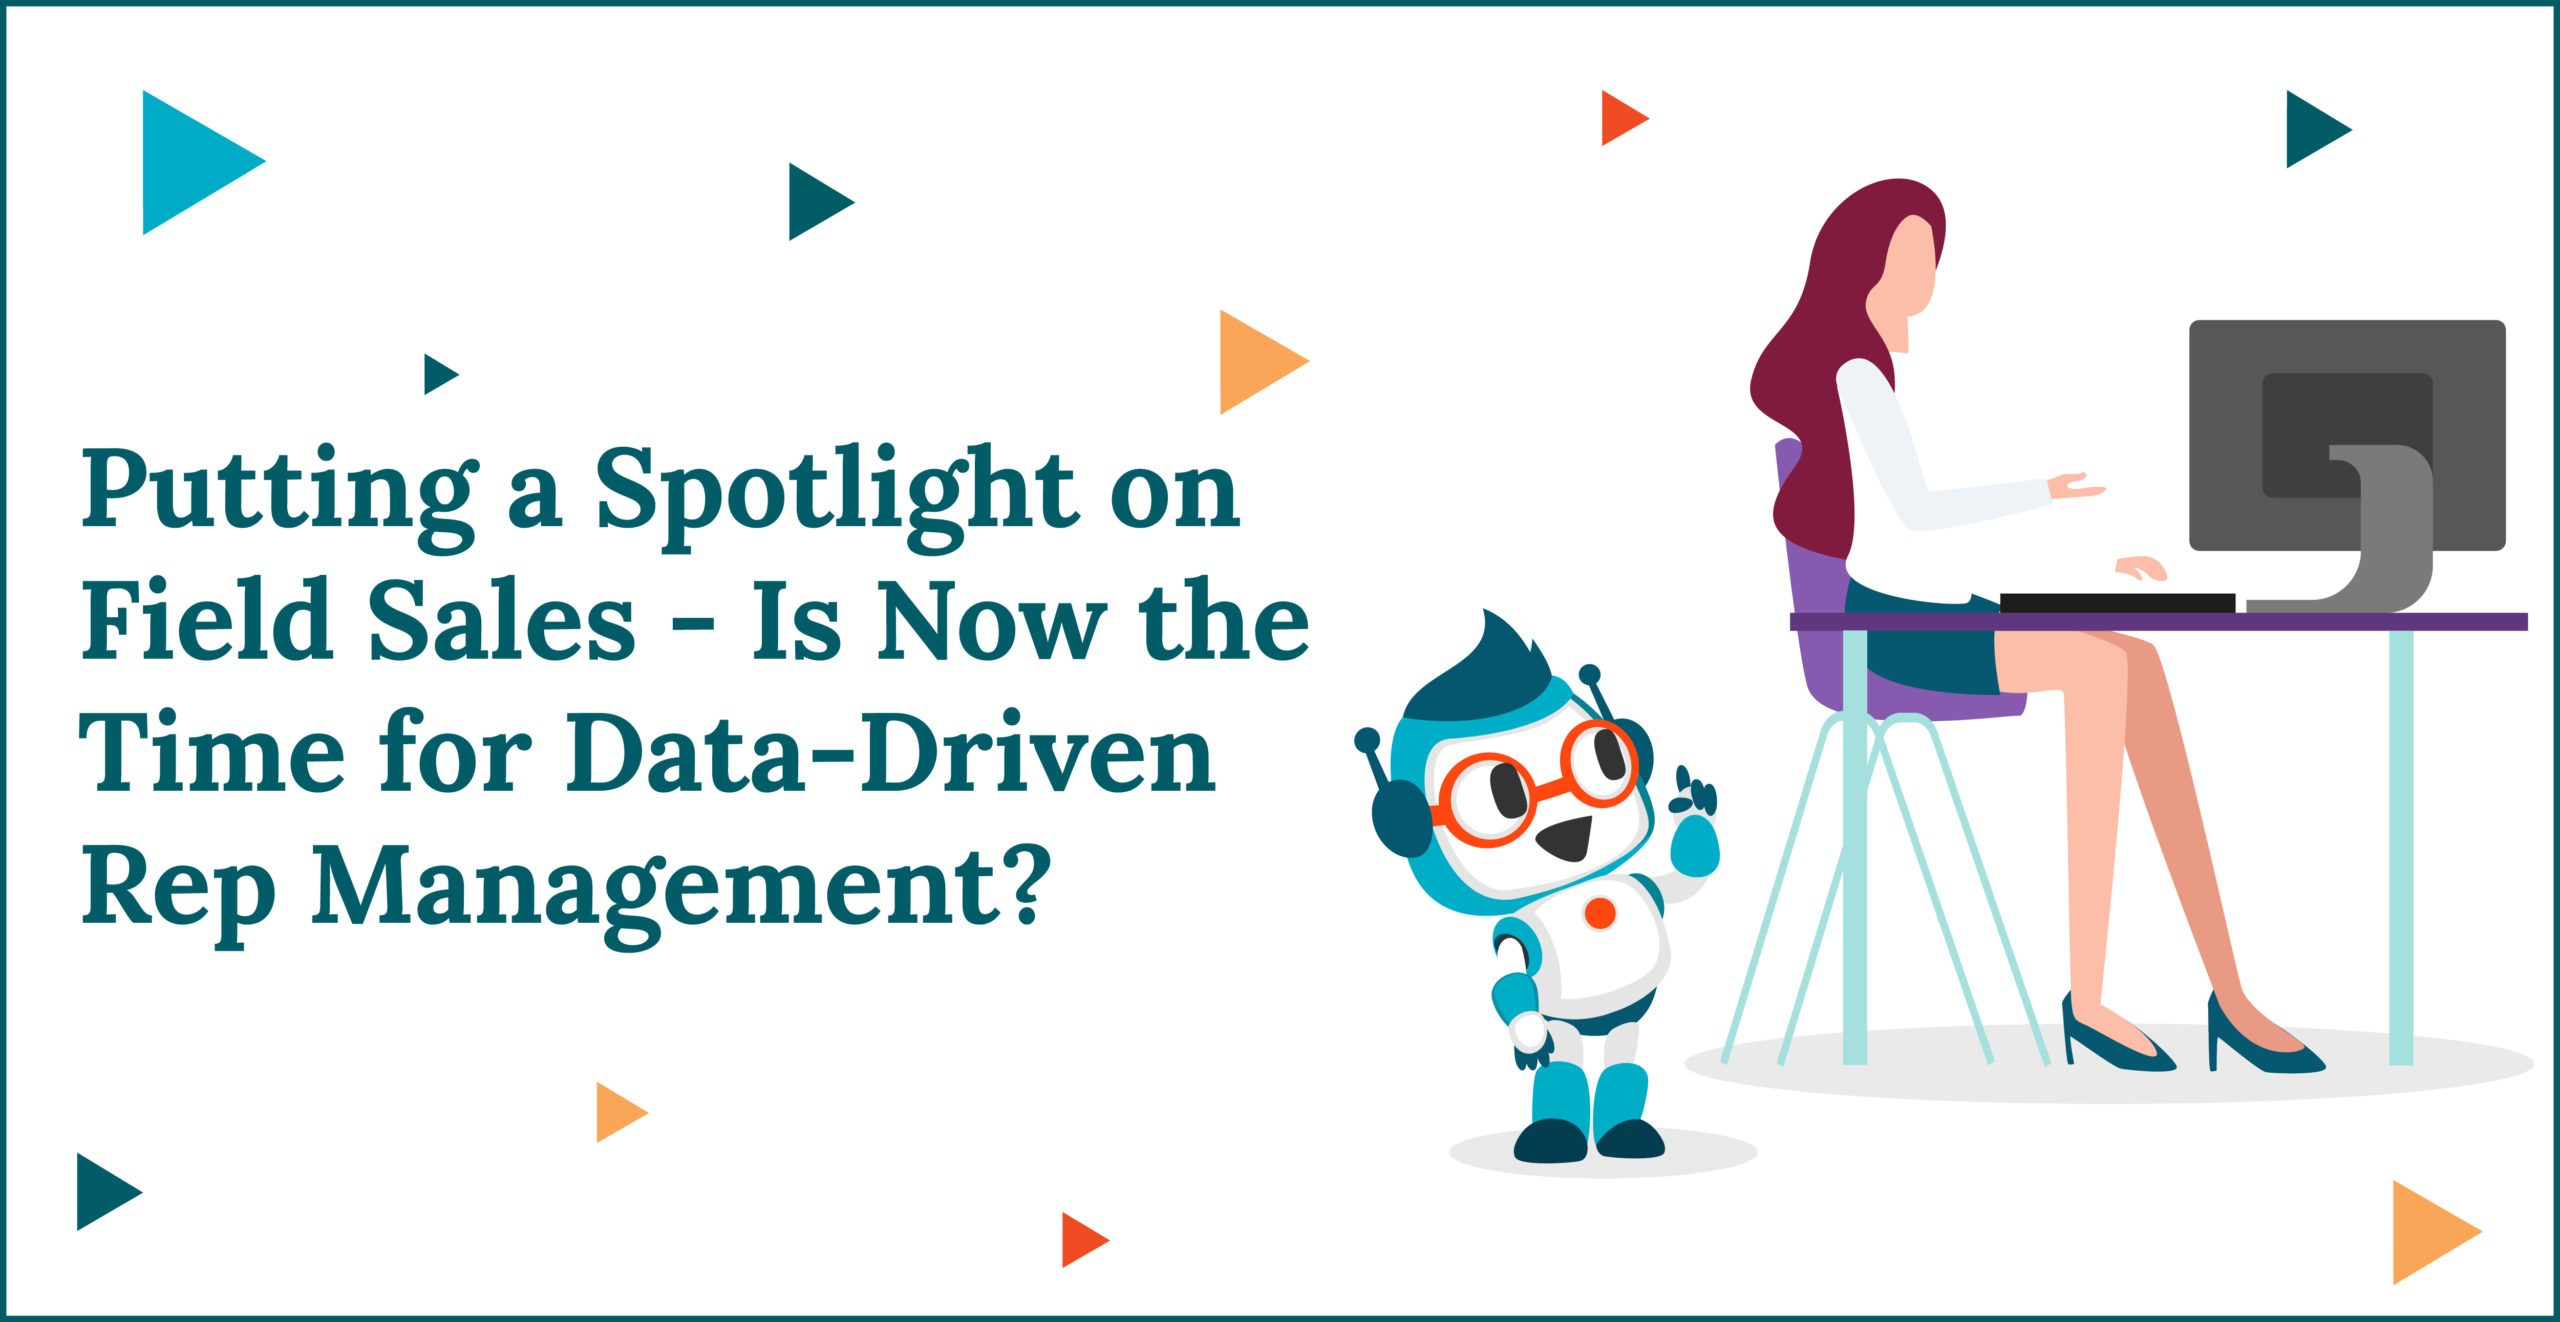 Putting a Spotlight on Field Sales—Is Now the Time for Data-Driven Rep Management?